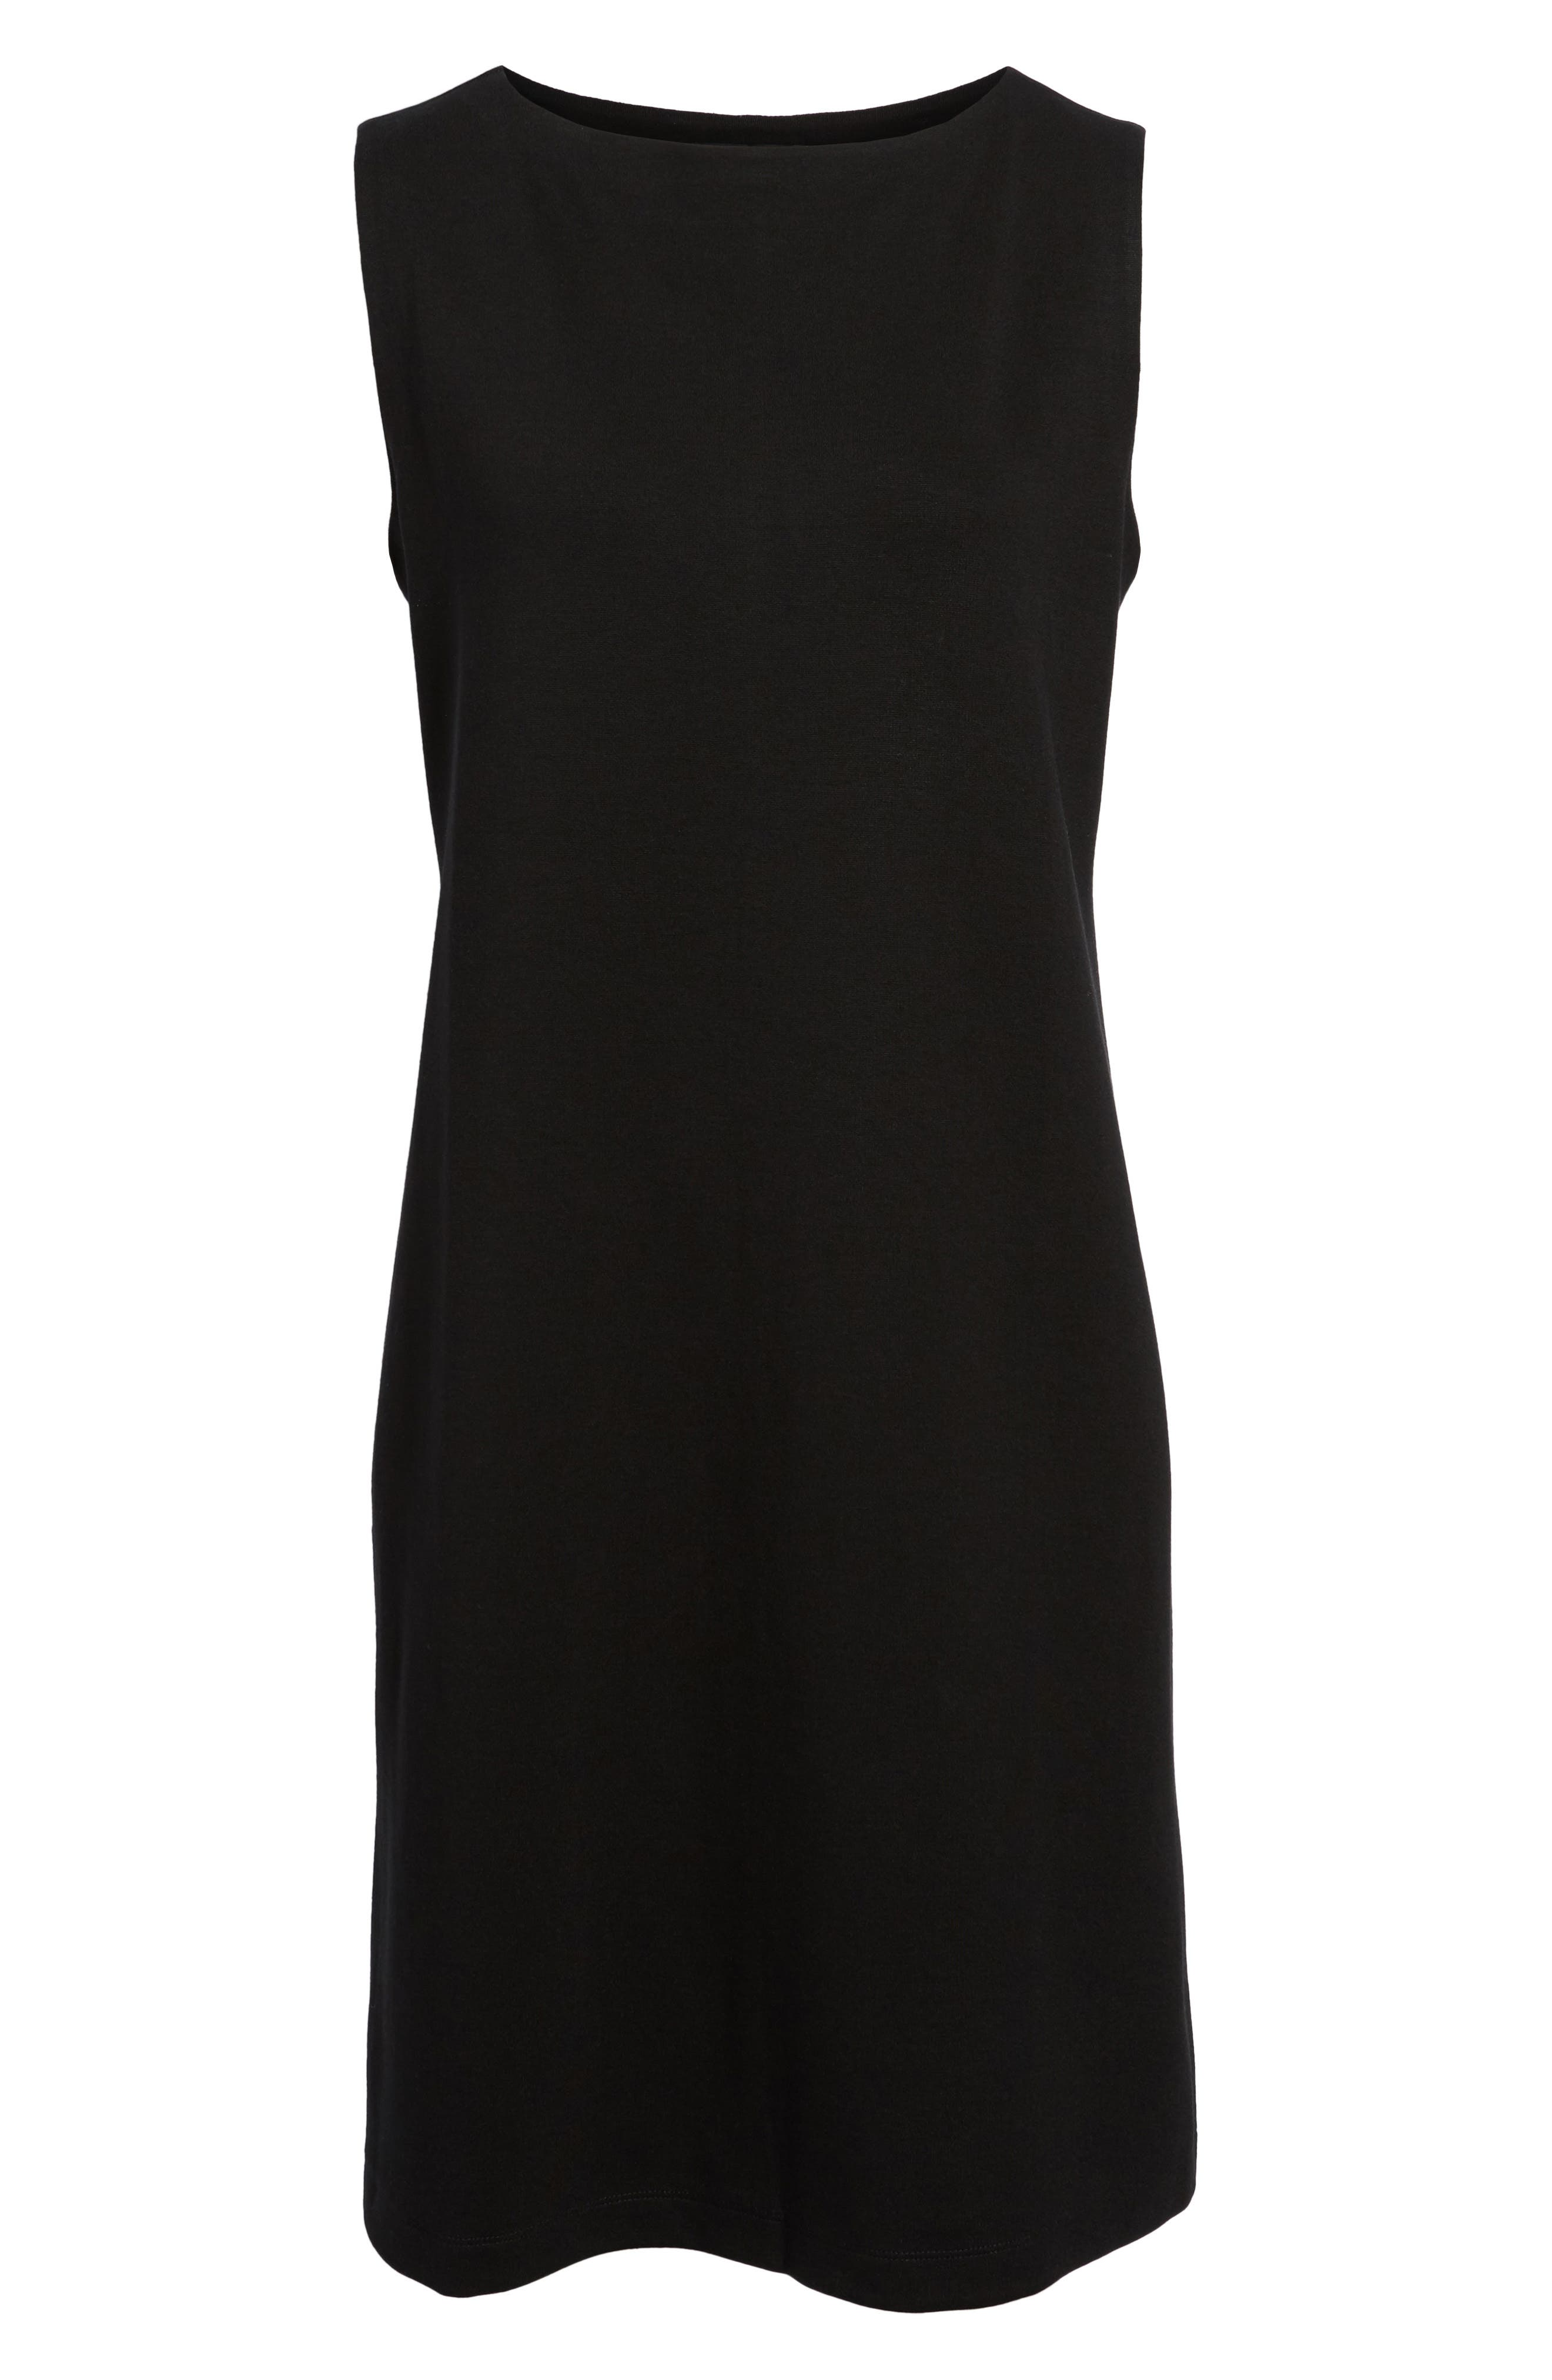 Tencel<sup>®</sup> Lyocell Blend Shift Dress,                             Alternate thumbnail 6, color,                             Black